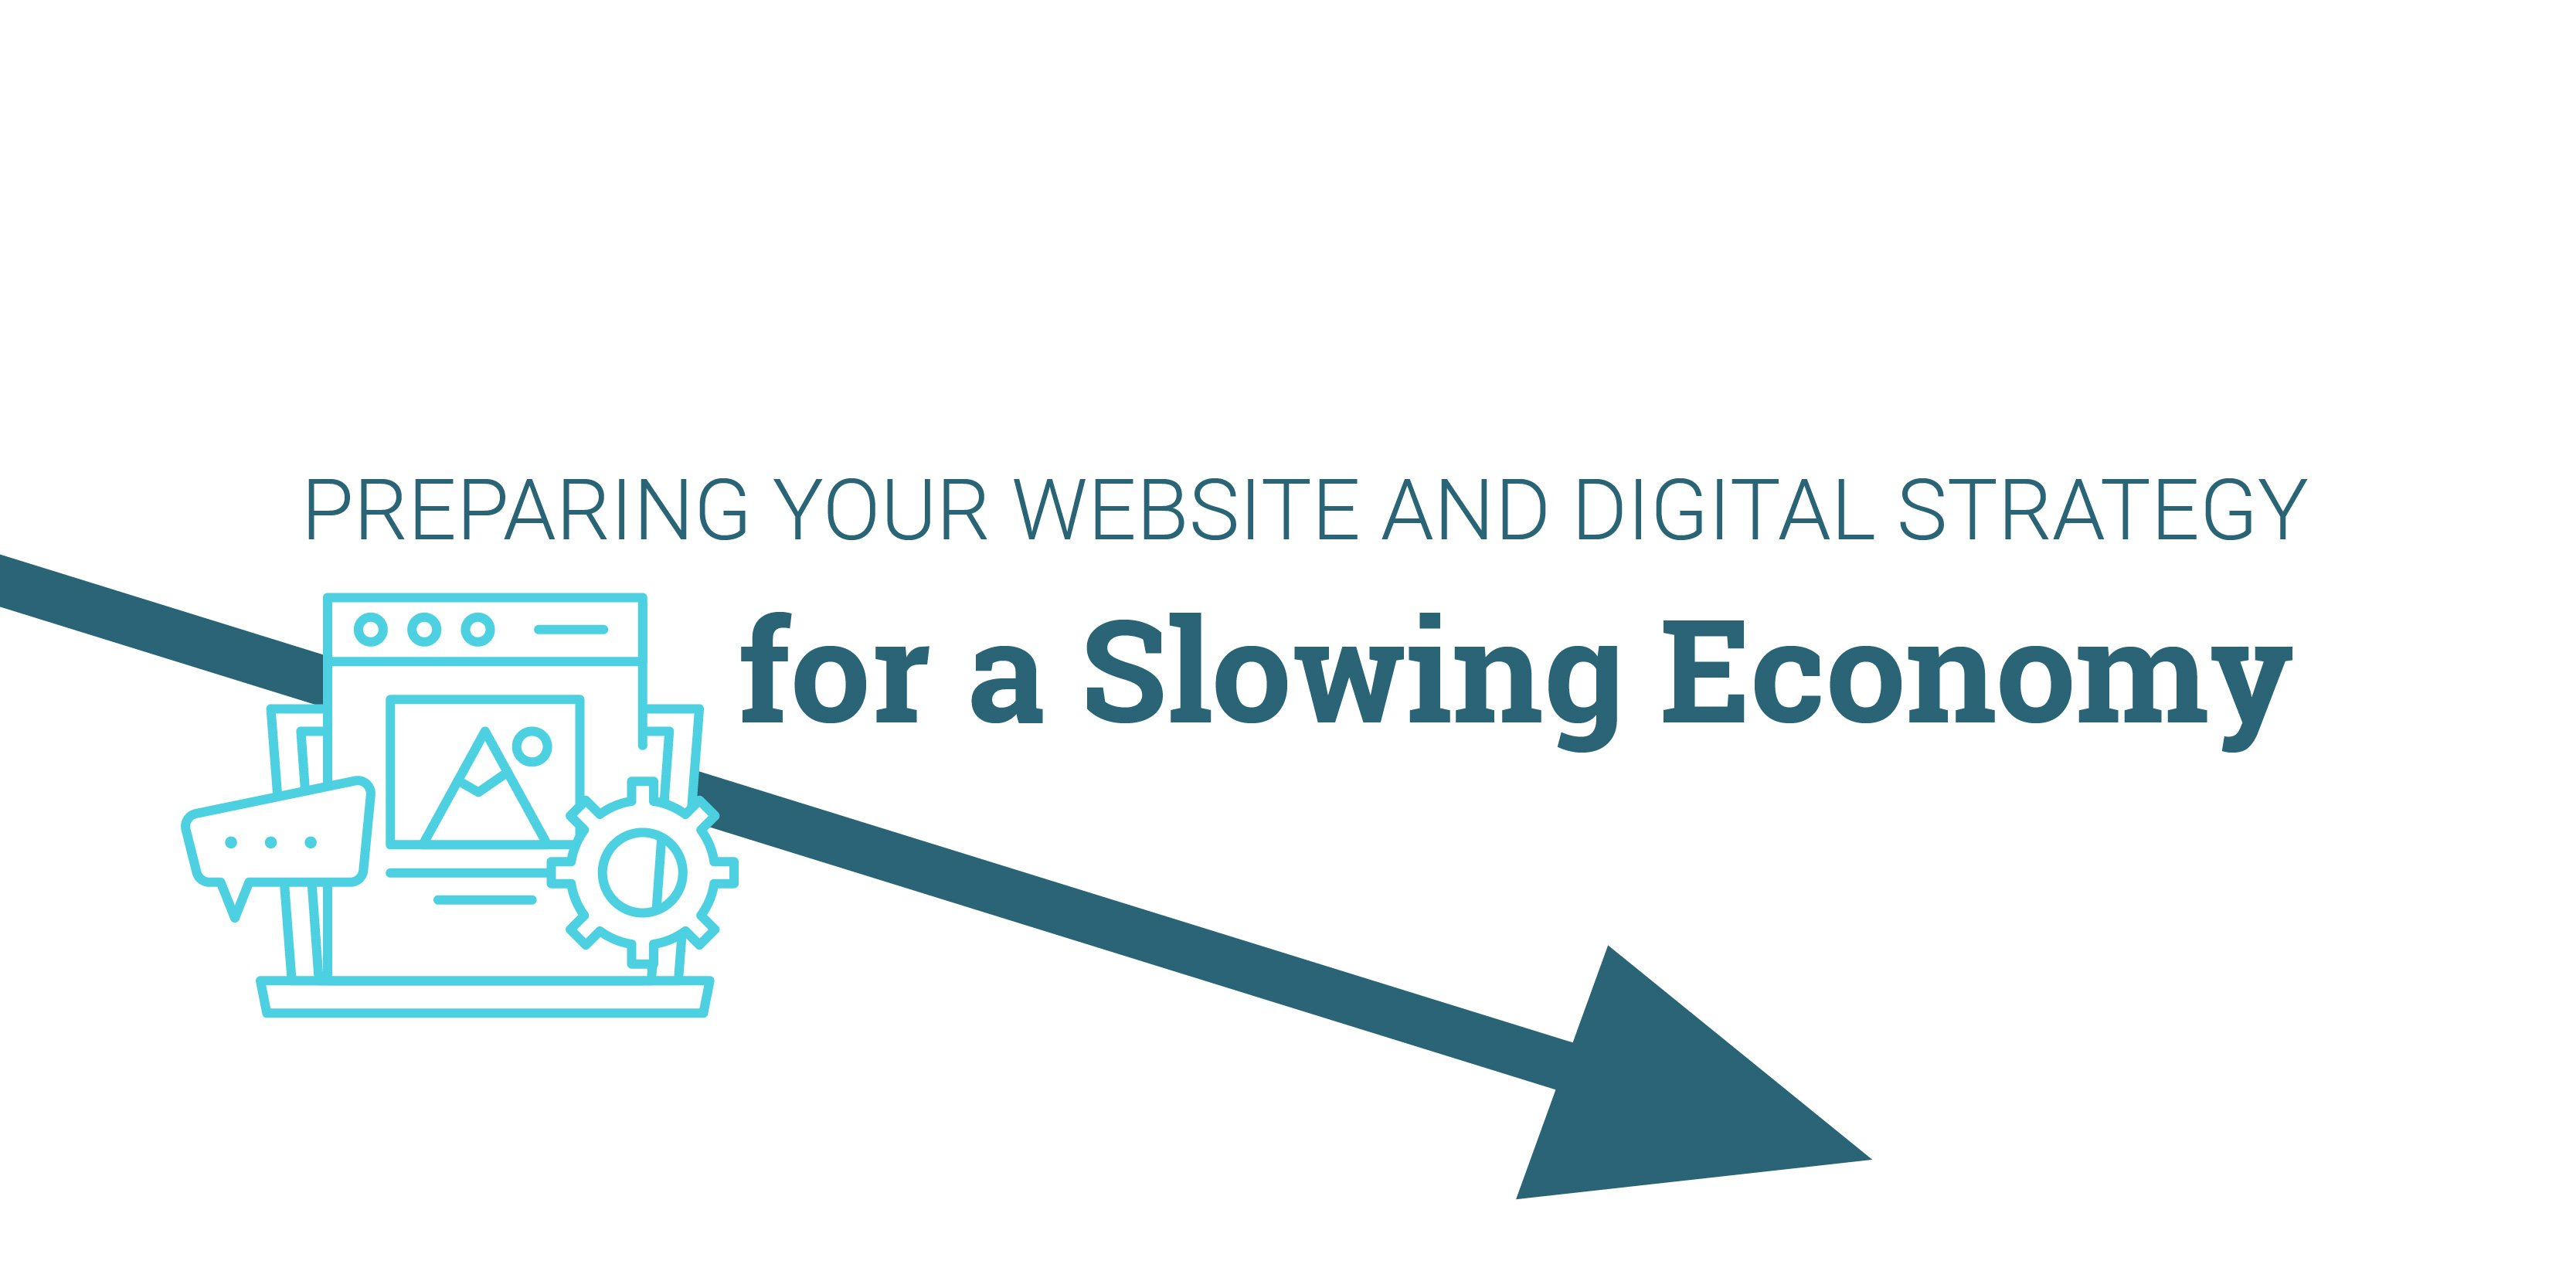 Preparing Your Website and Digital Strategy for a Slowing Economy